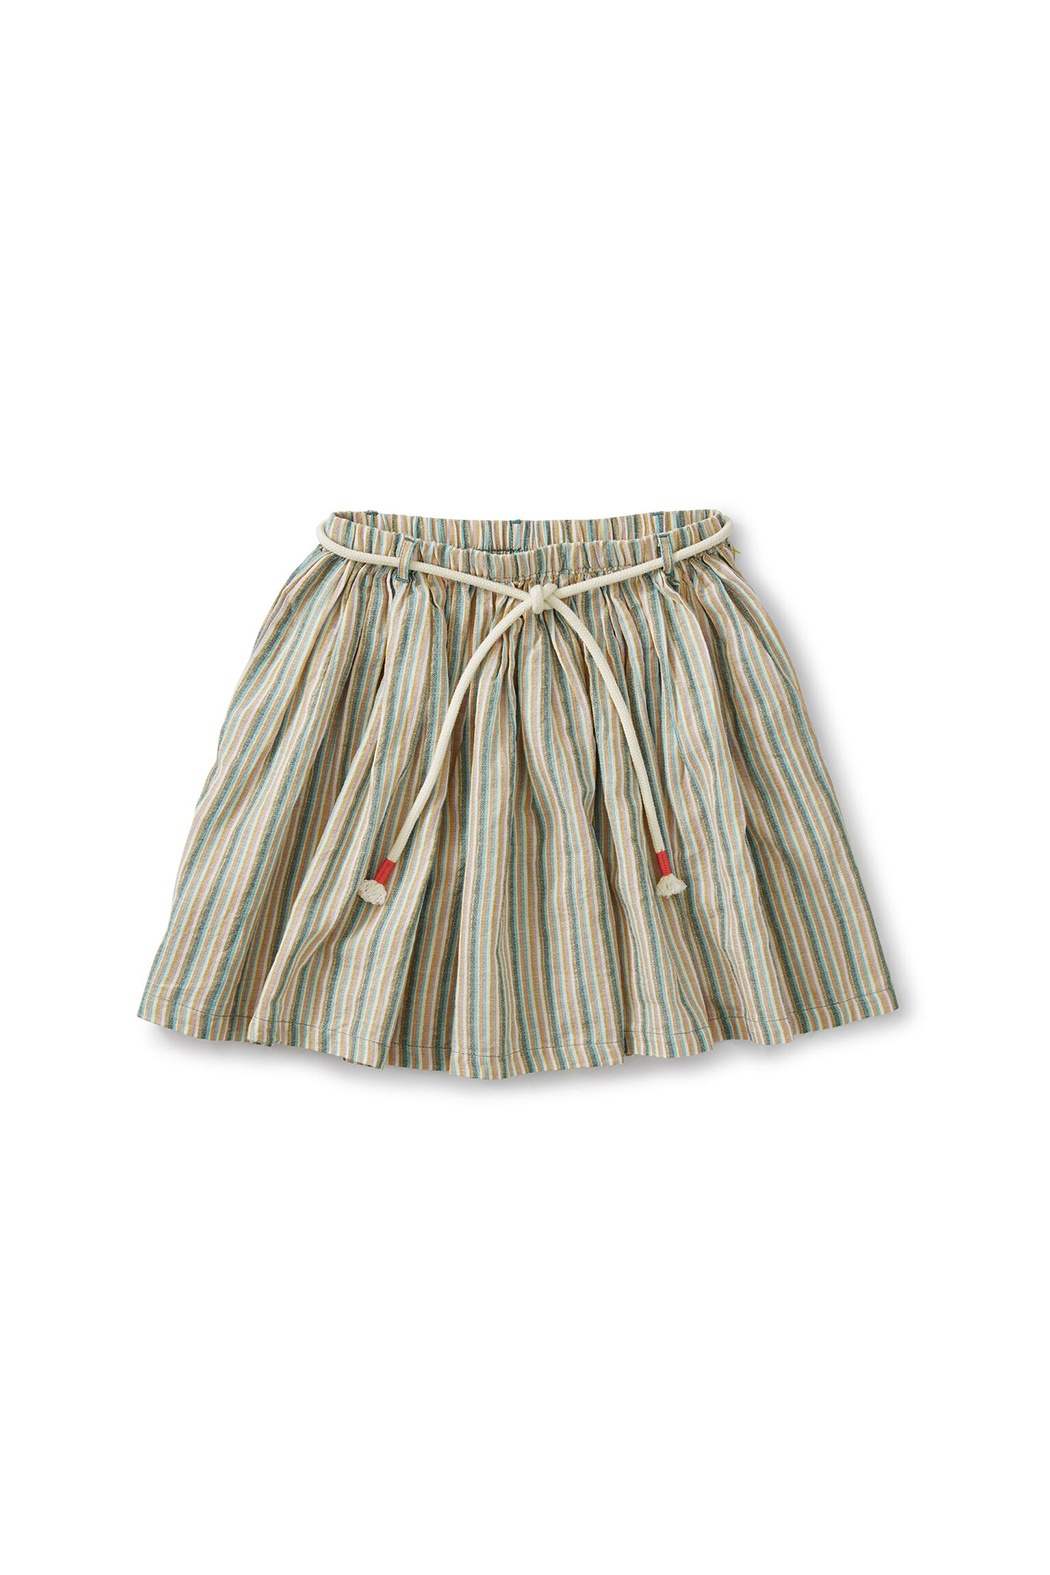 Tea Collection Removable Tie Twirl Skirt - Main Image